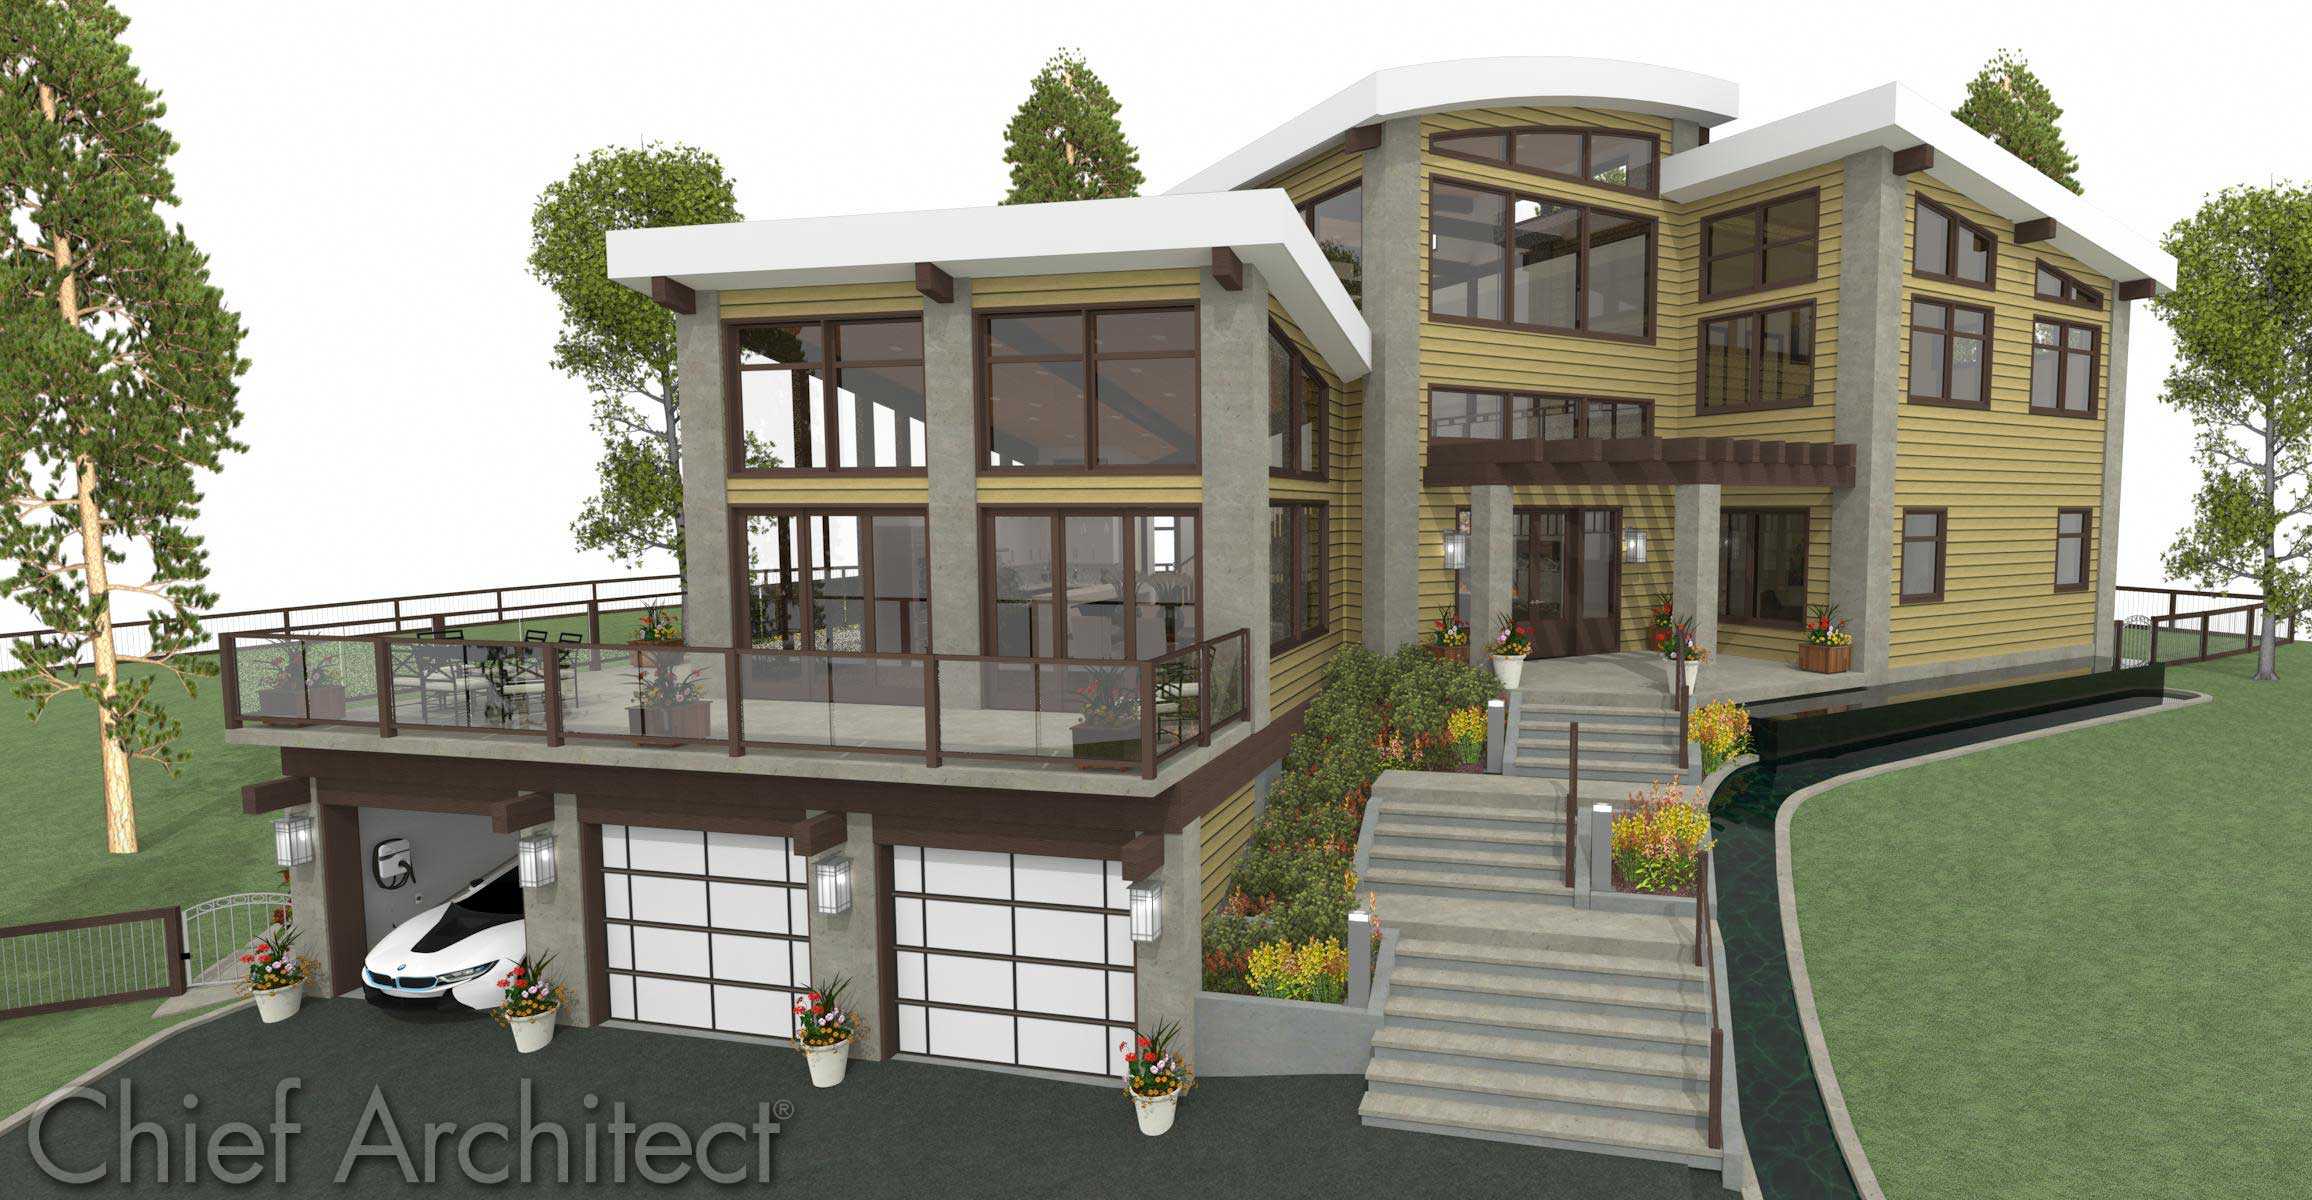 breckenridge - New Home Architecture